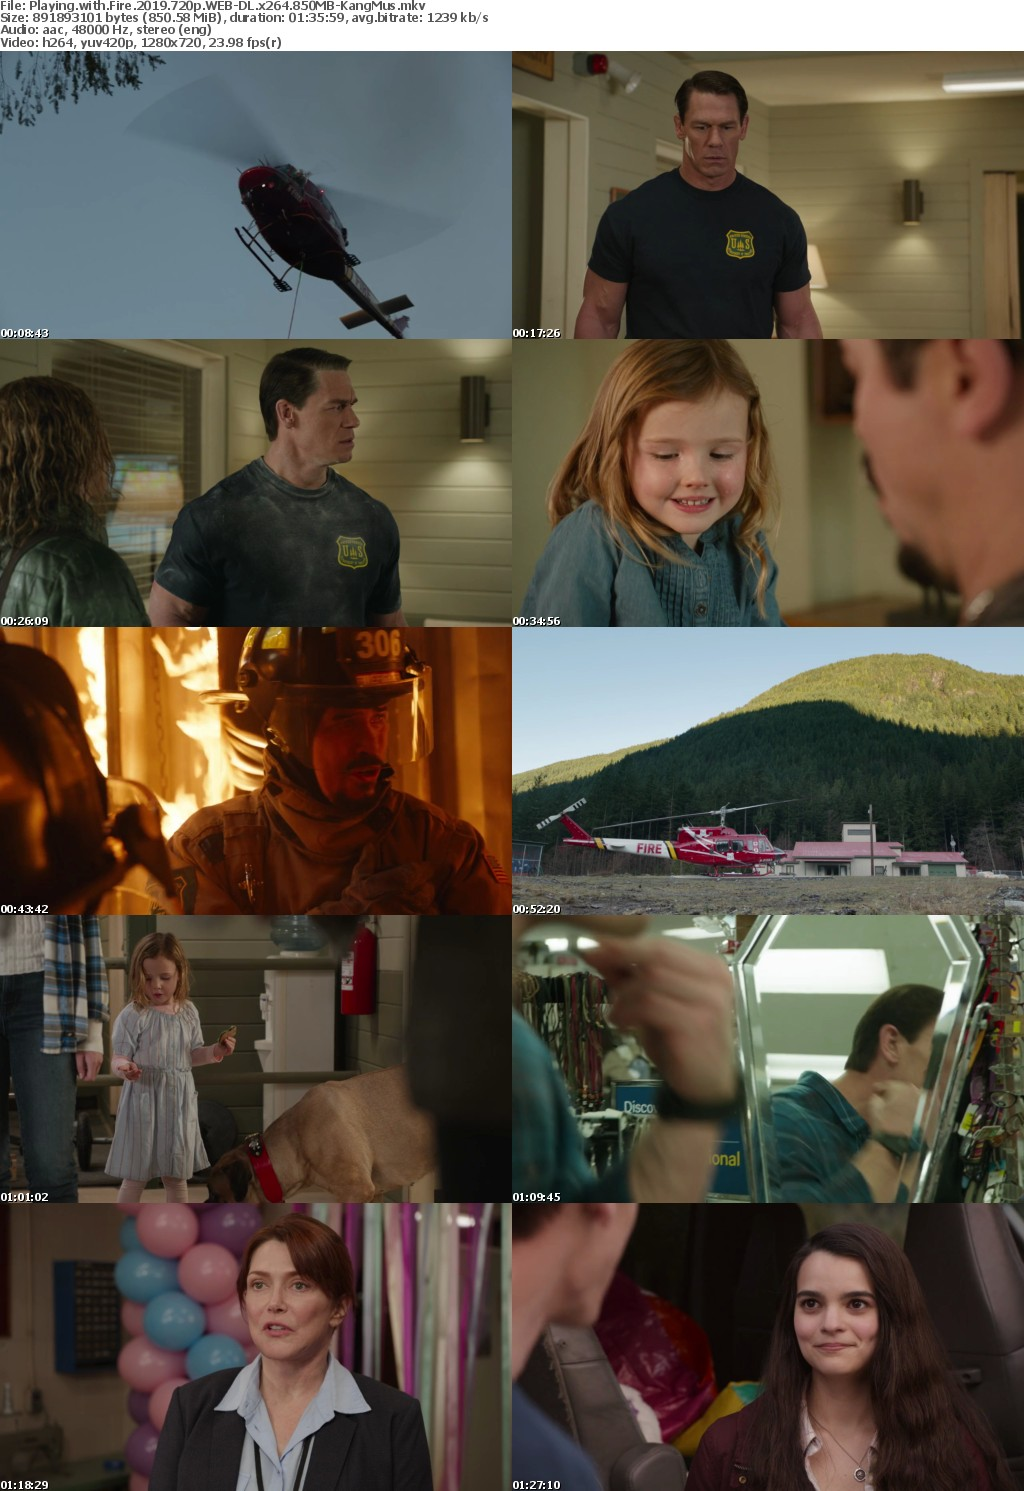 Playing with Fire (2019) 720p WEB-DL x264-KangMus